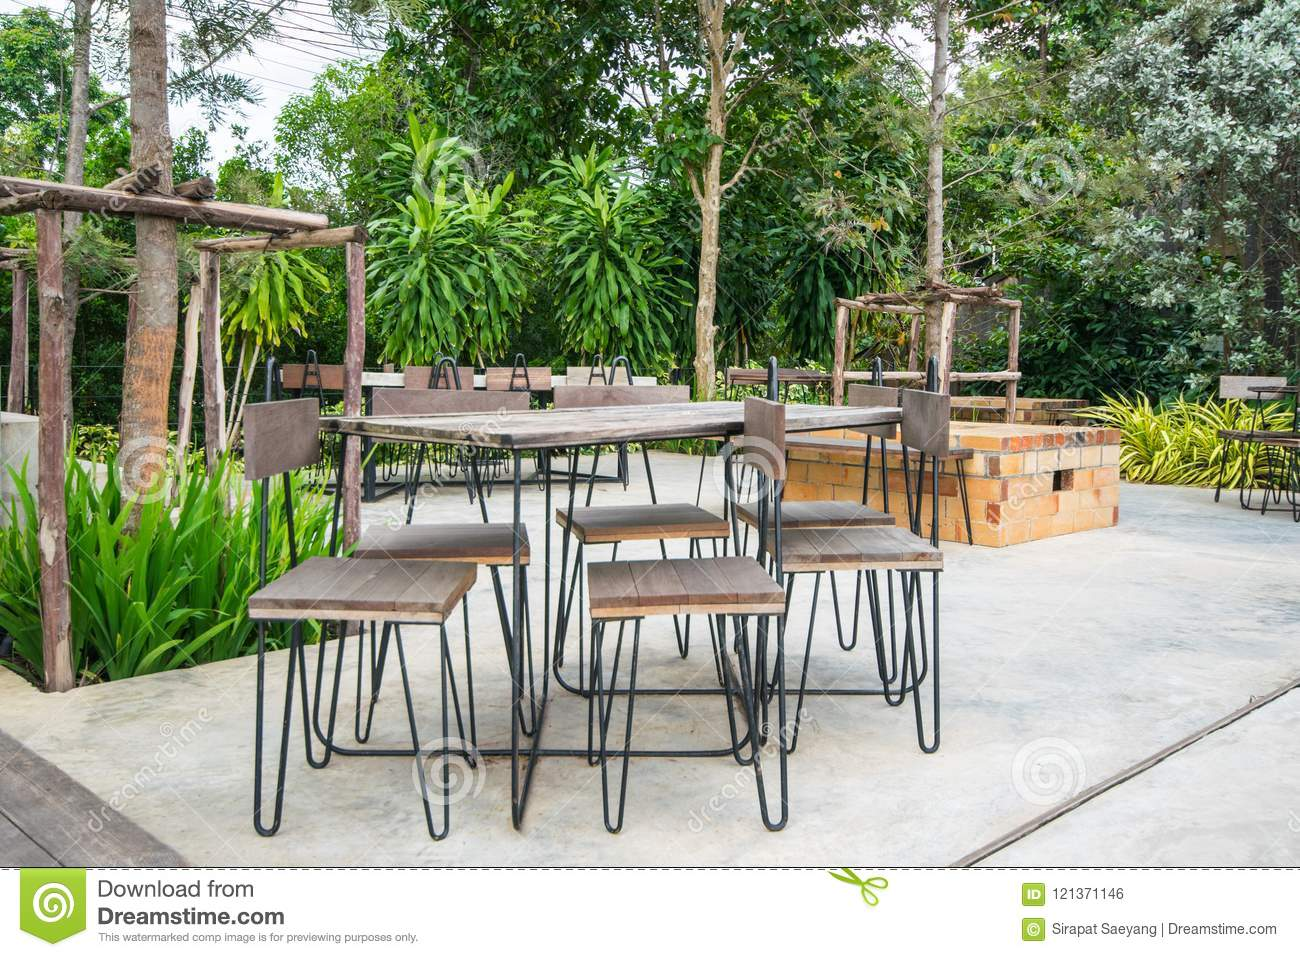 Outdoor Coffee Corner Outdoor Cafe Chairs And Tables In Coffee Shop Stock Photo Image Of Vintage Furniture 121371146